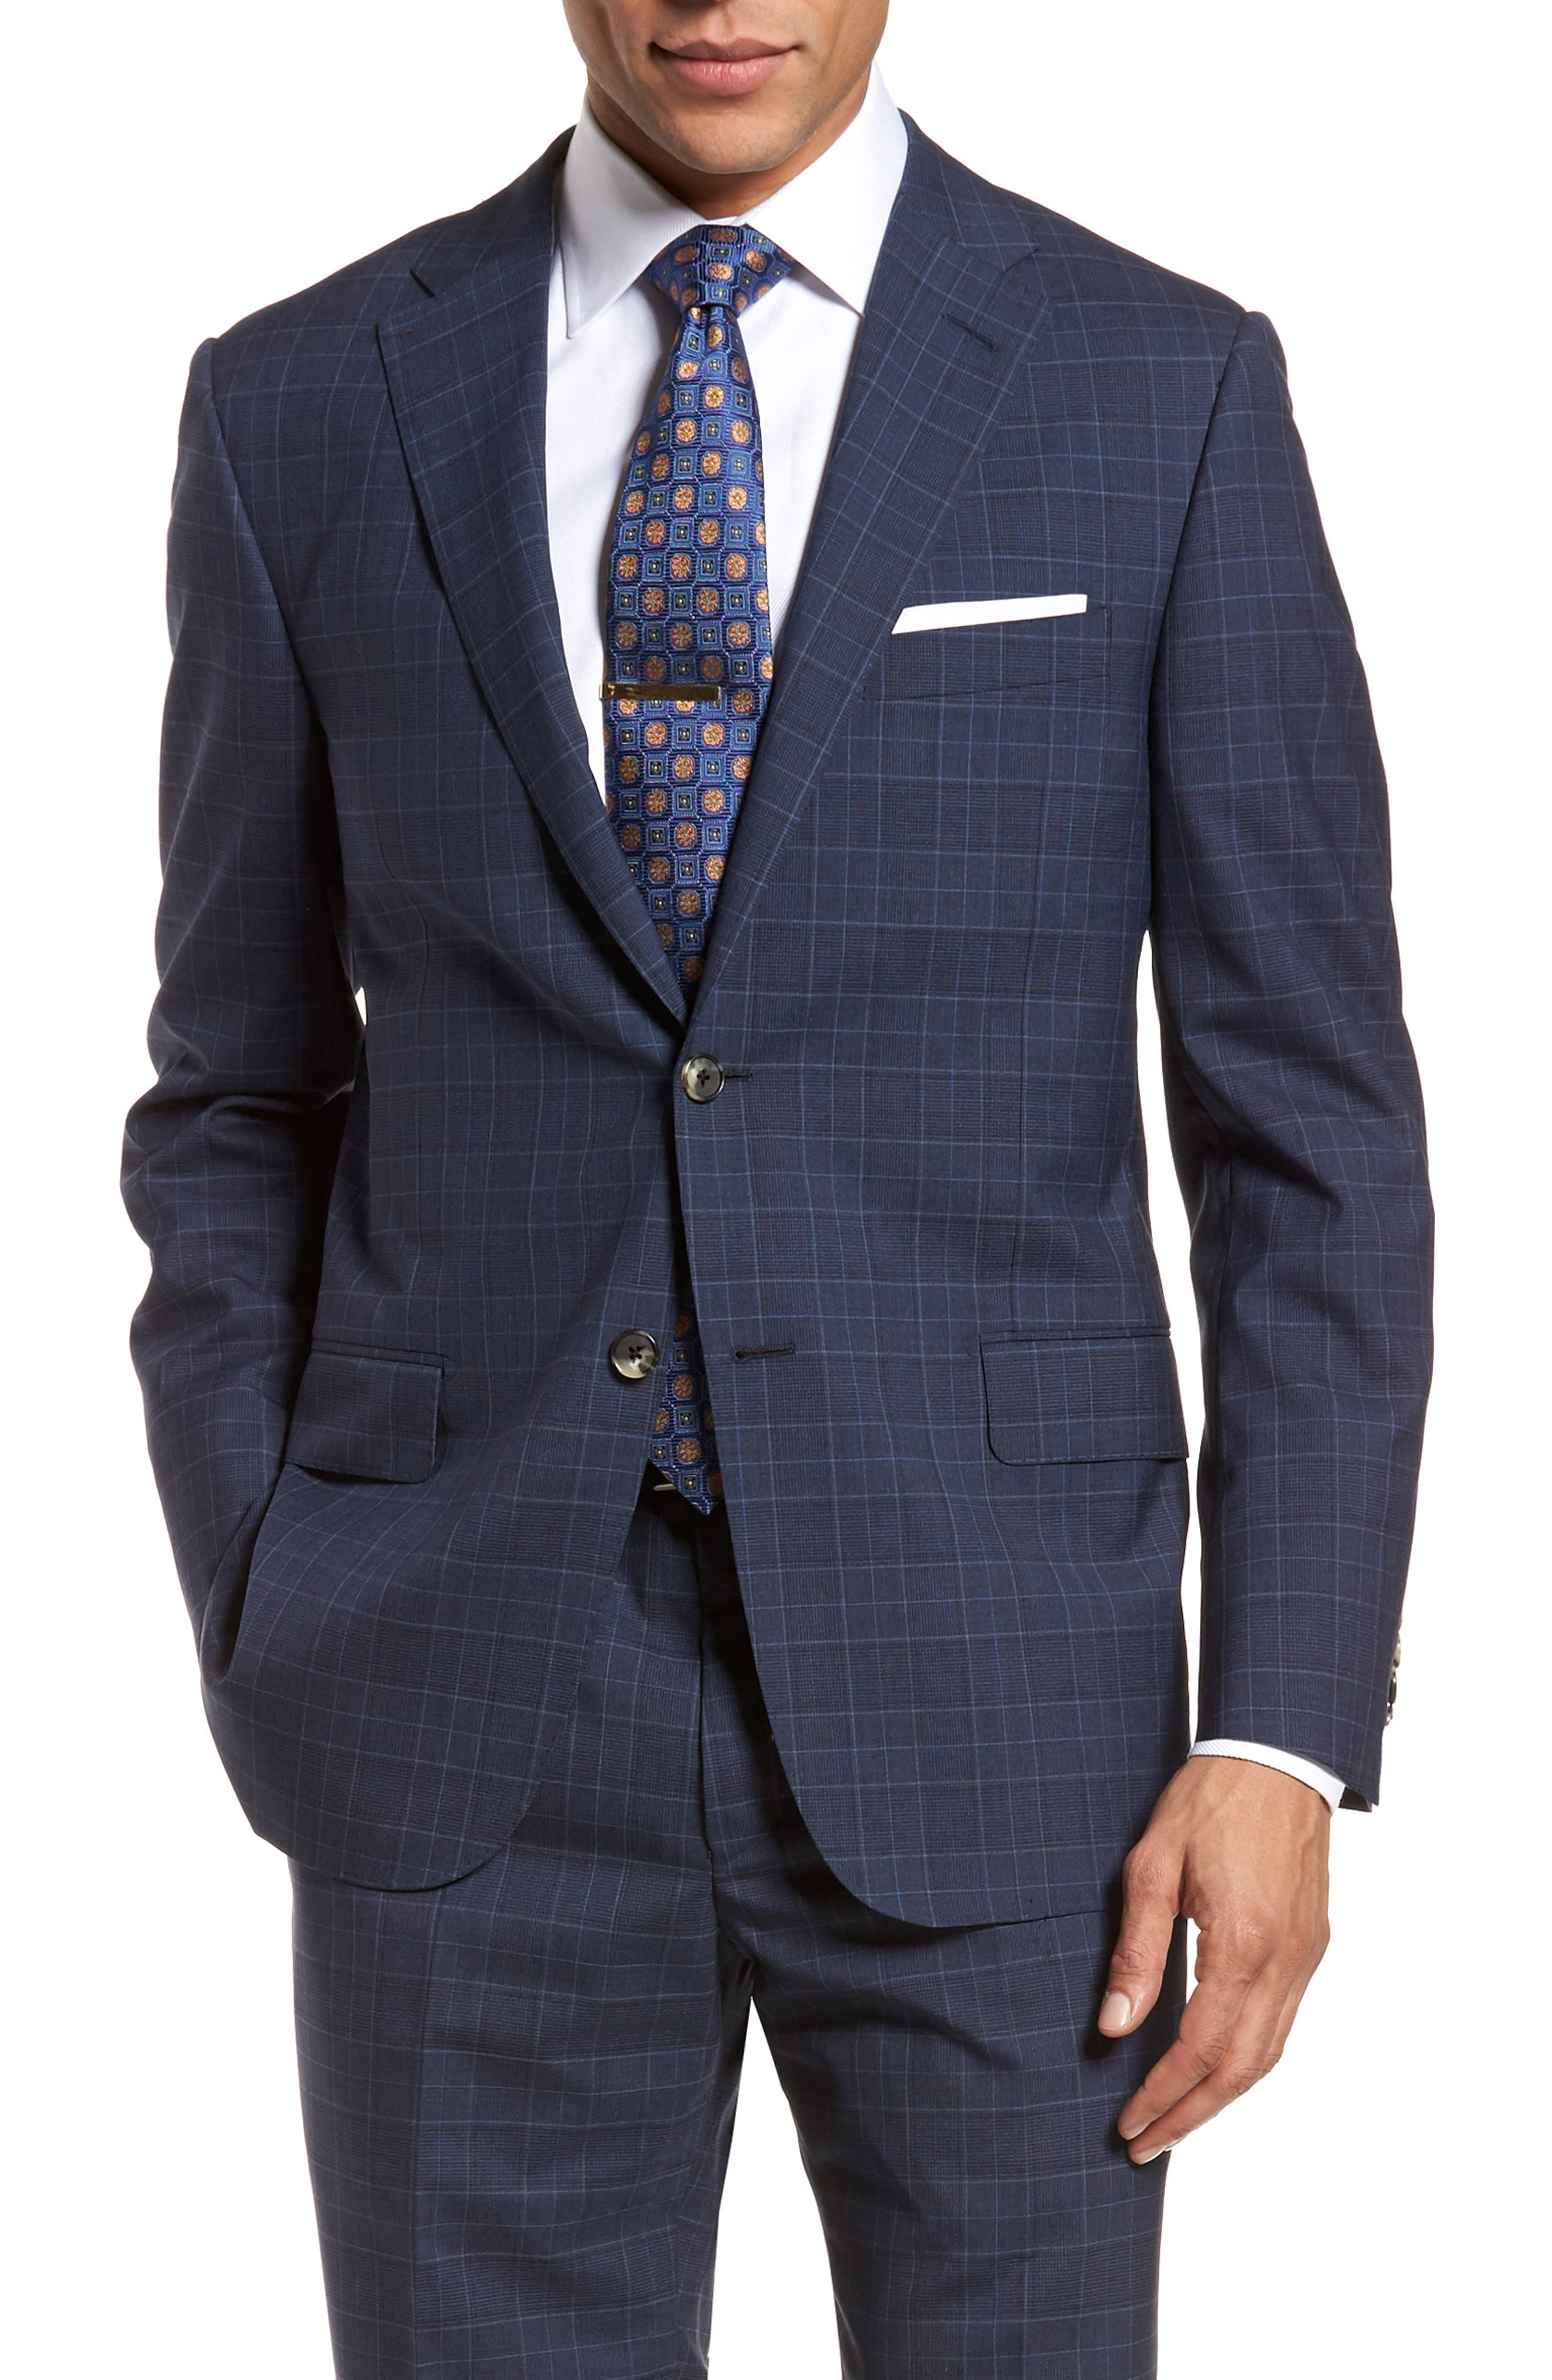 HICKEY FREEMAN,                             Classic B Fit Plaid Wool Suit,                             Alternate thumbnail 5, color,                             400